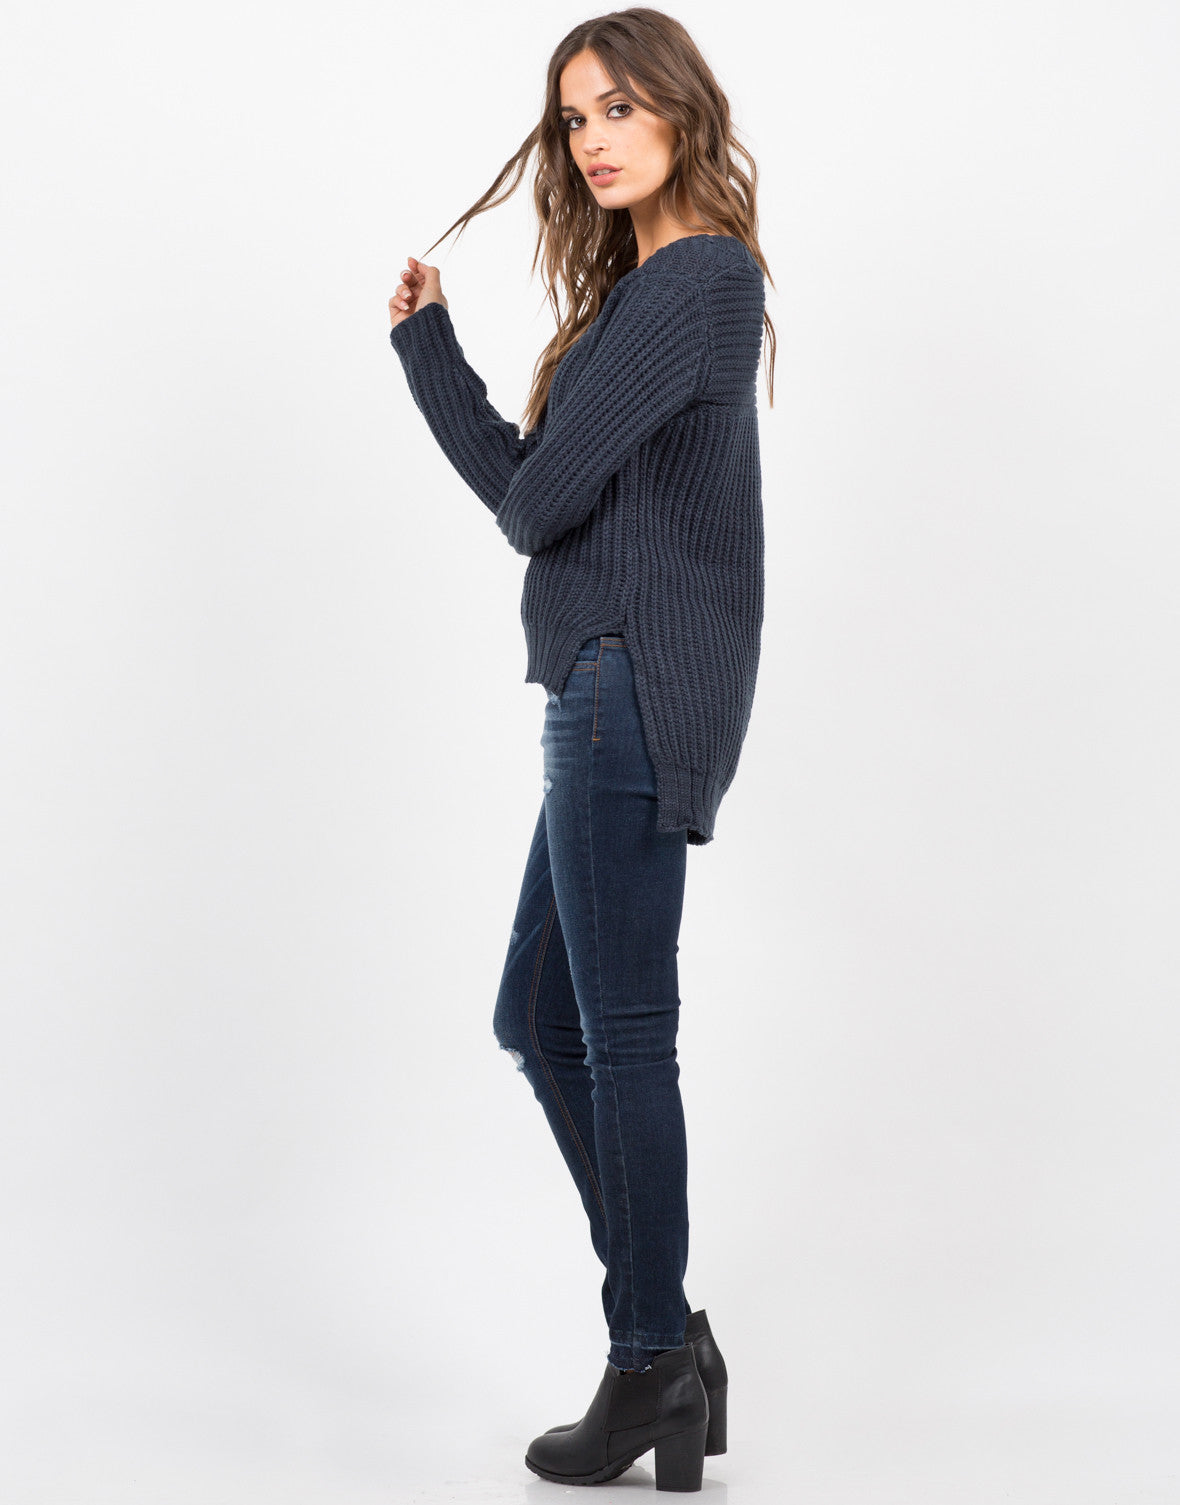 Side View of Hi-Low Knit Sweater